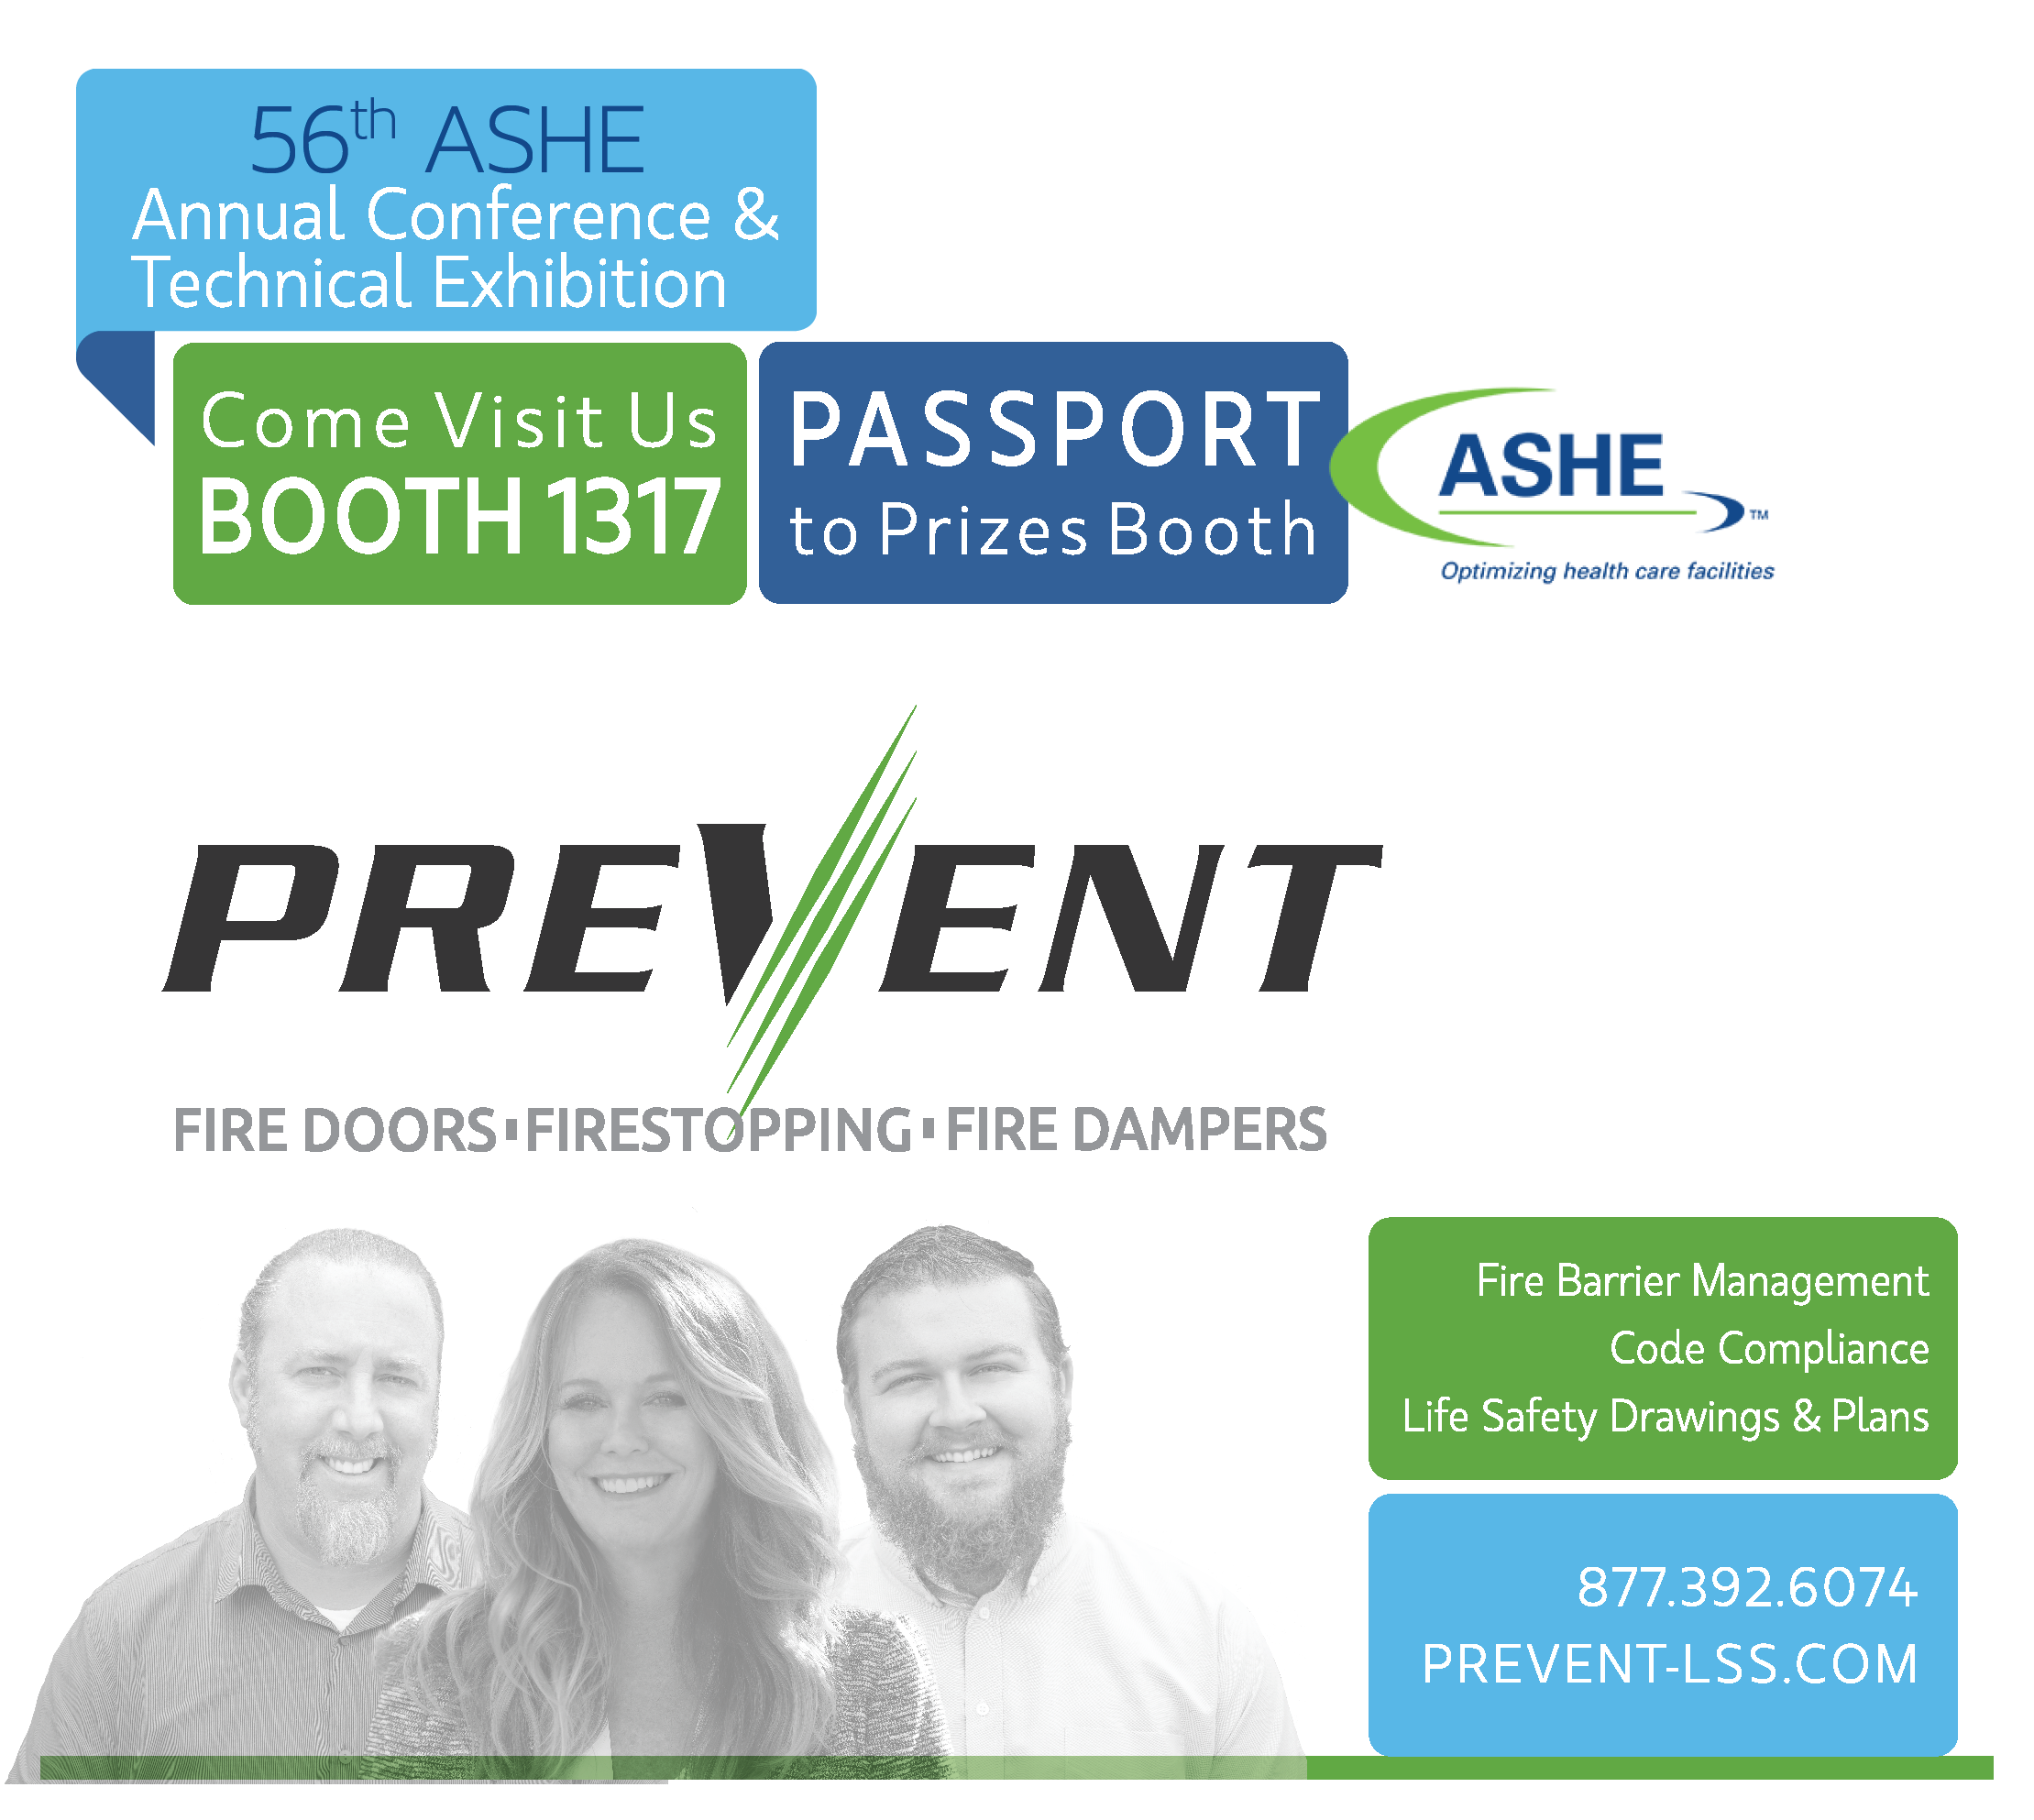 Prevent at ASHE Annual 2019